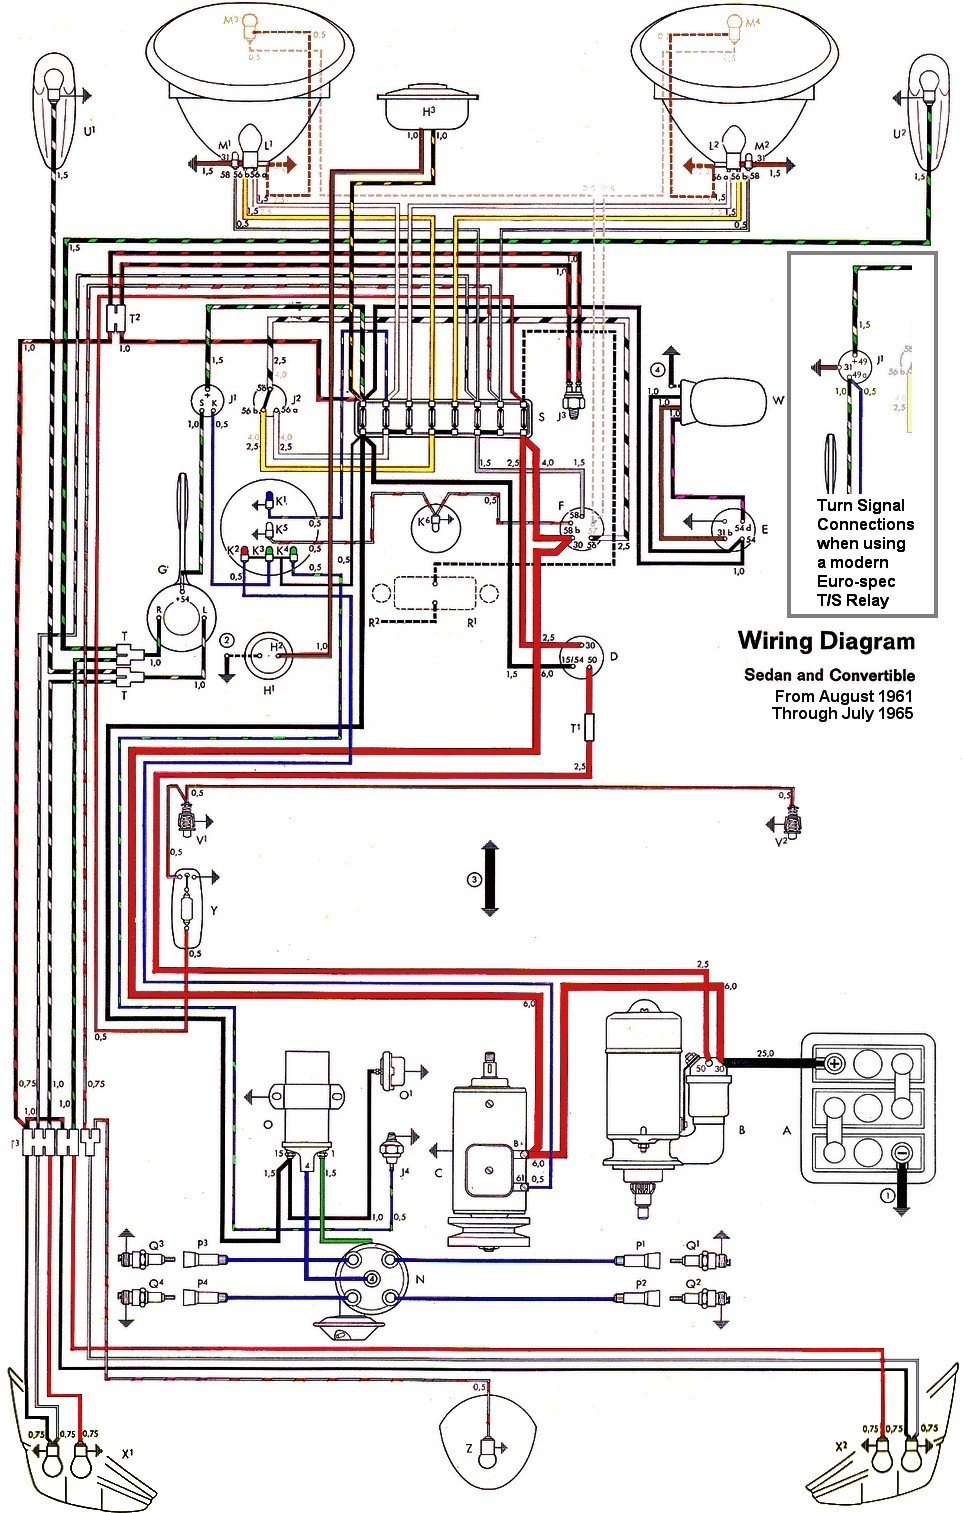 bug_62 65withinset thesamba com type 1 wiring diagrams 1970 vw bug wiring diagram at creativeand.co